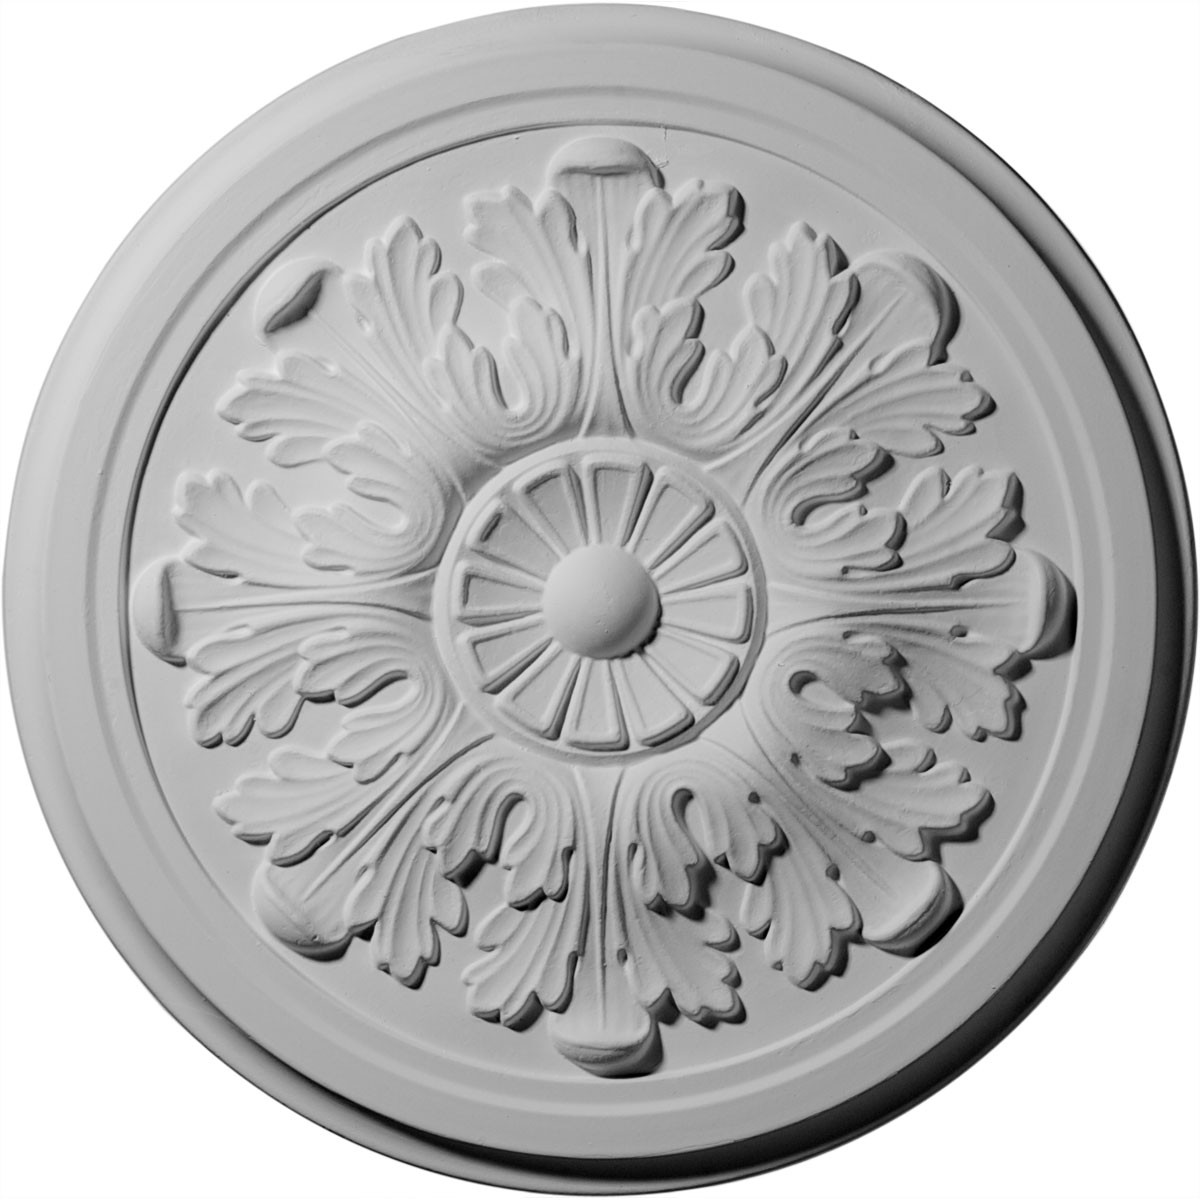 """EM-CM12LE - 12 3/4""""OD x 7/8""""P Legacy Acanthus Ceiling Medallion (Fits Canopies up to 3 1/2"""")"""